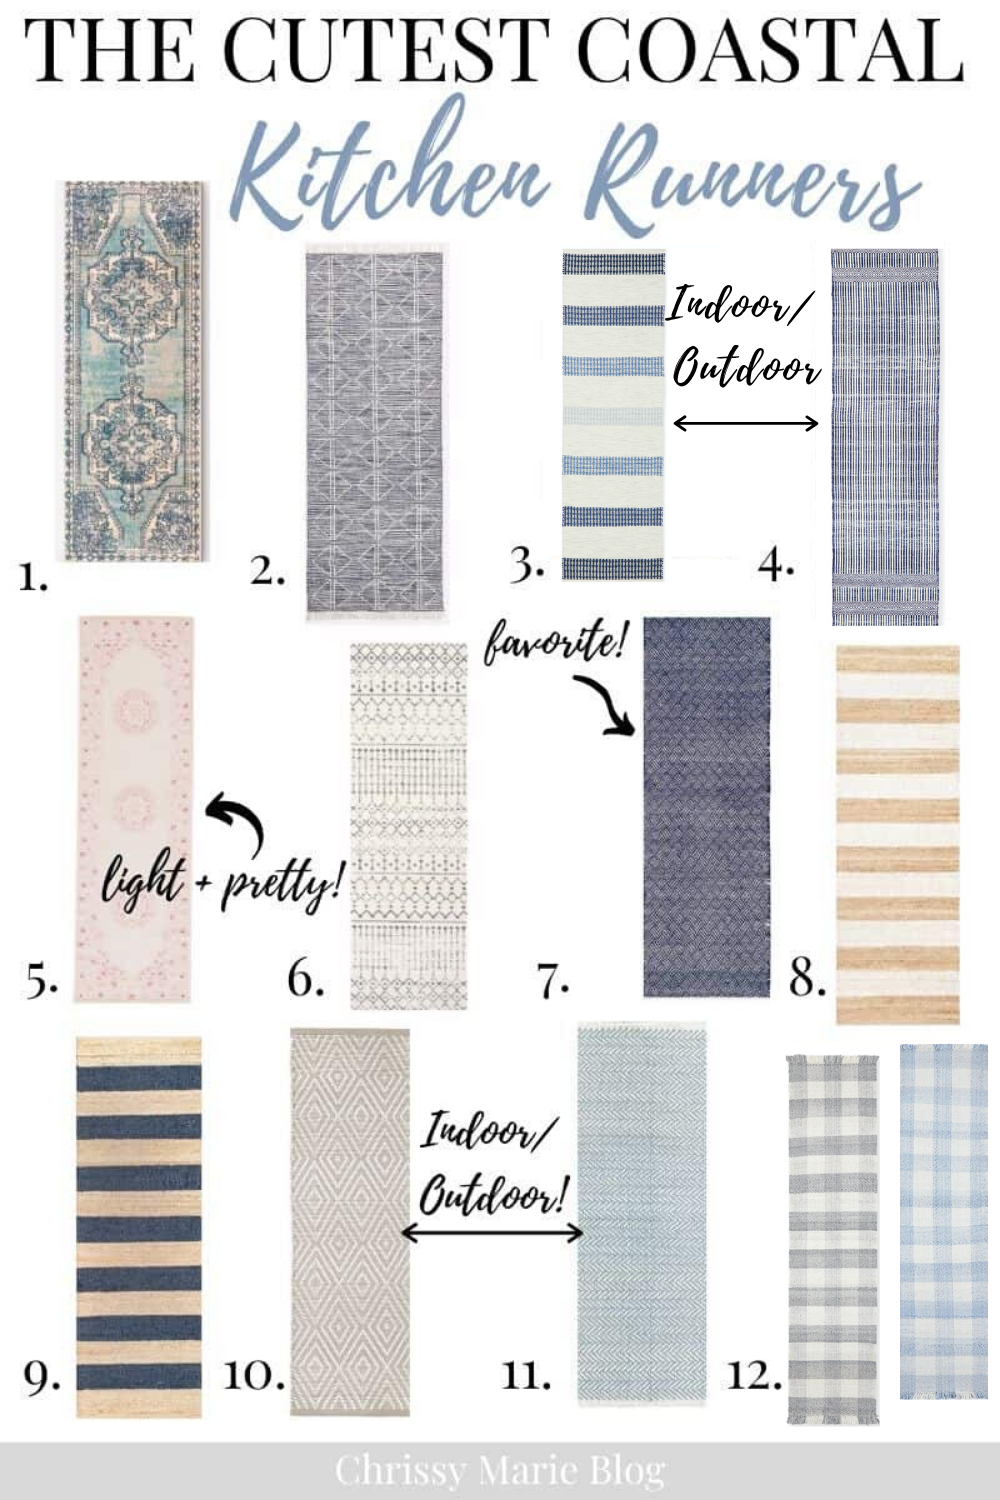 Pinterest image that says best coastal kitchen runner rugs